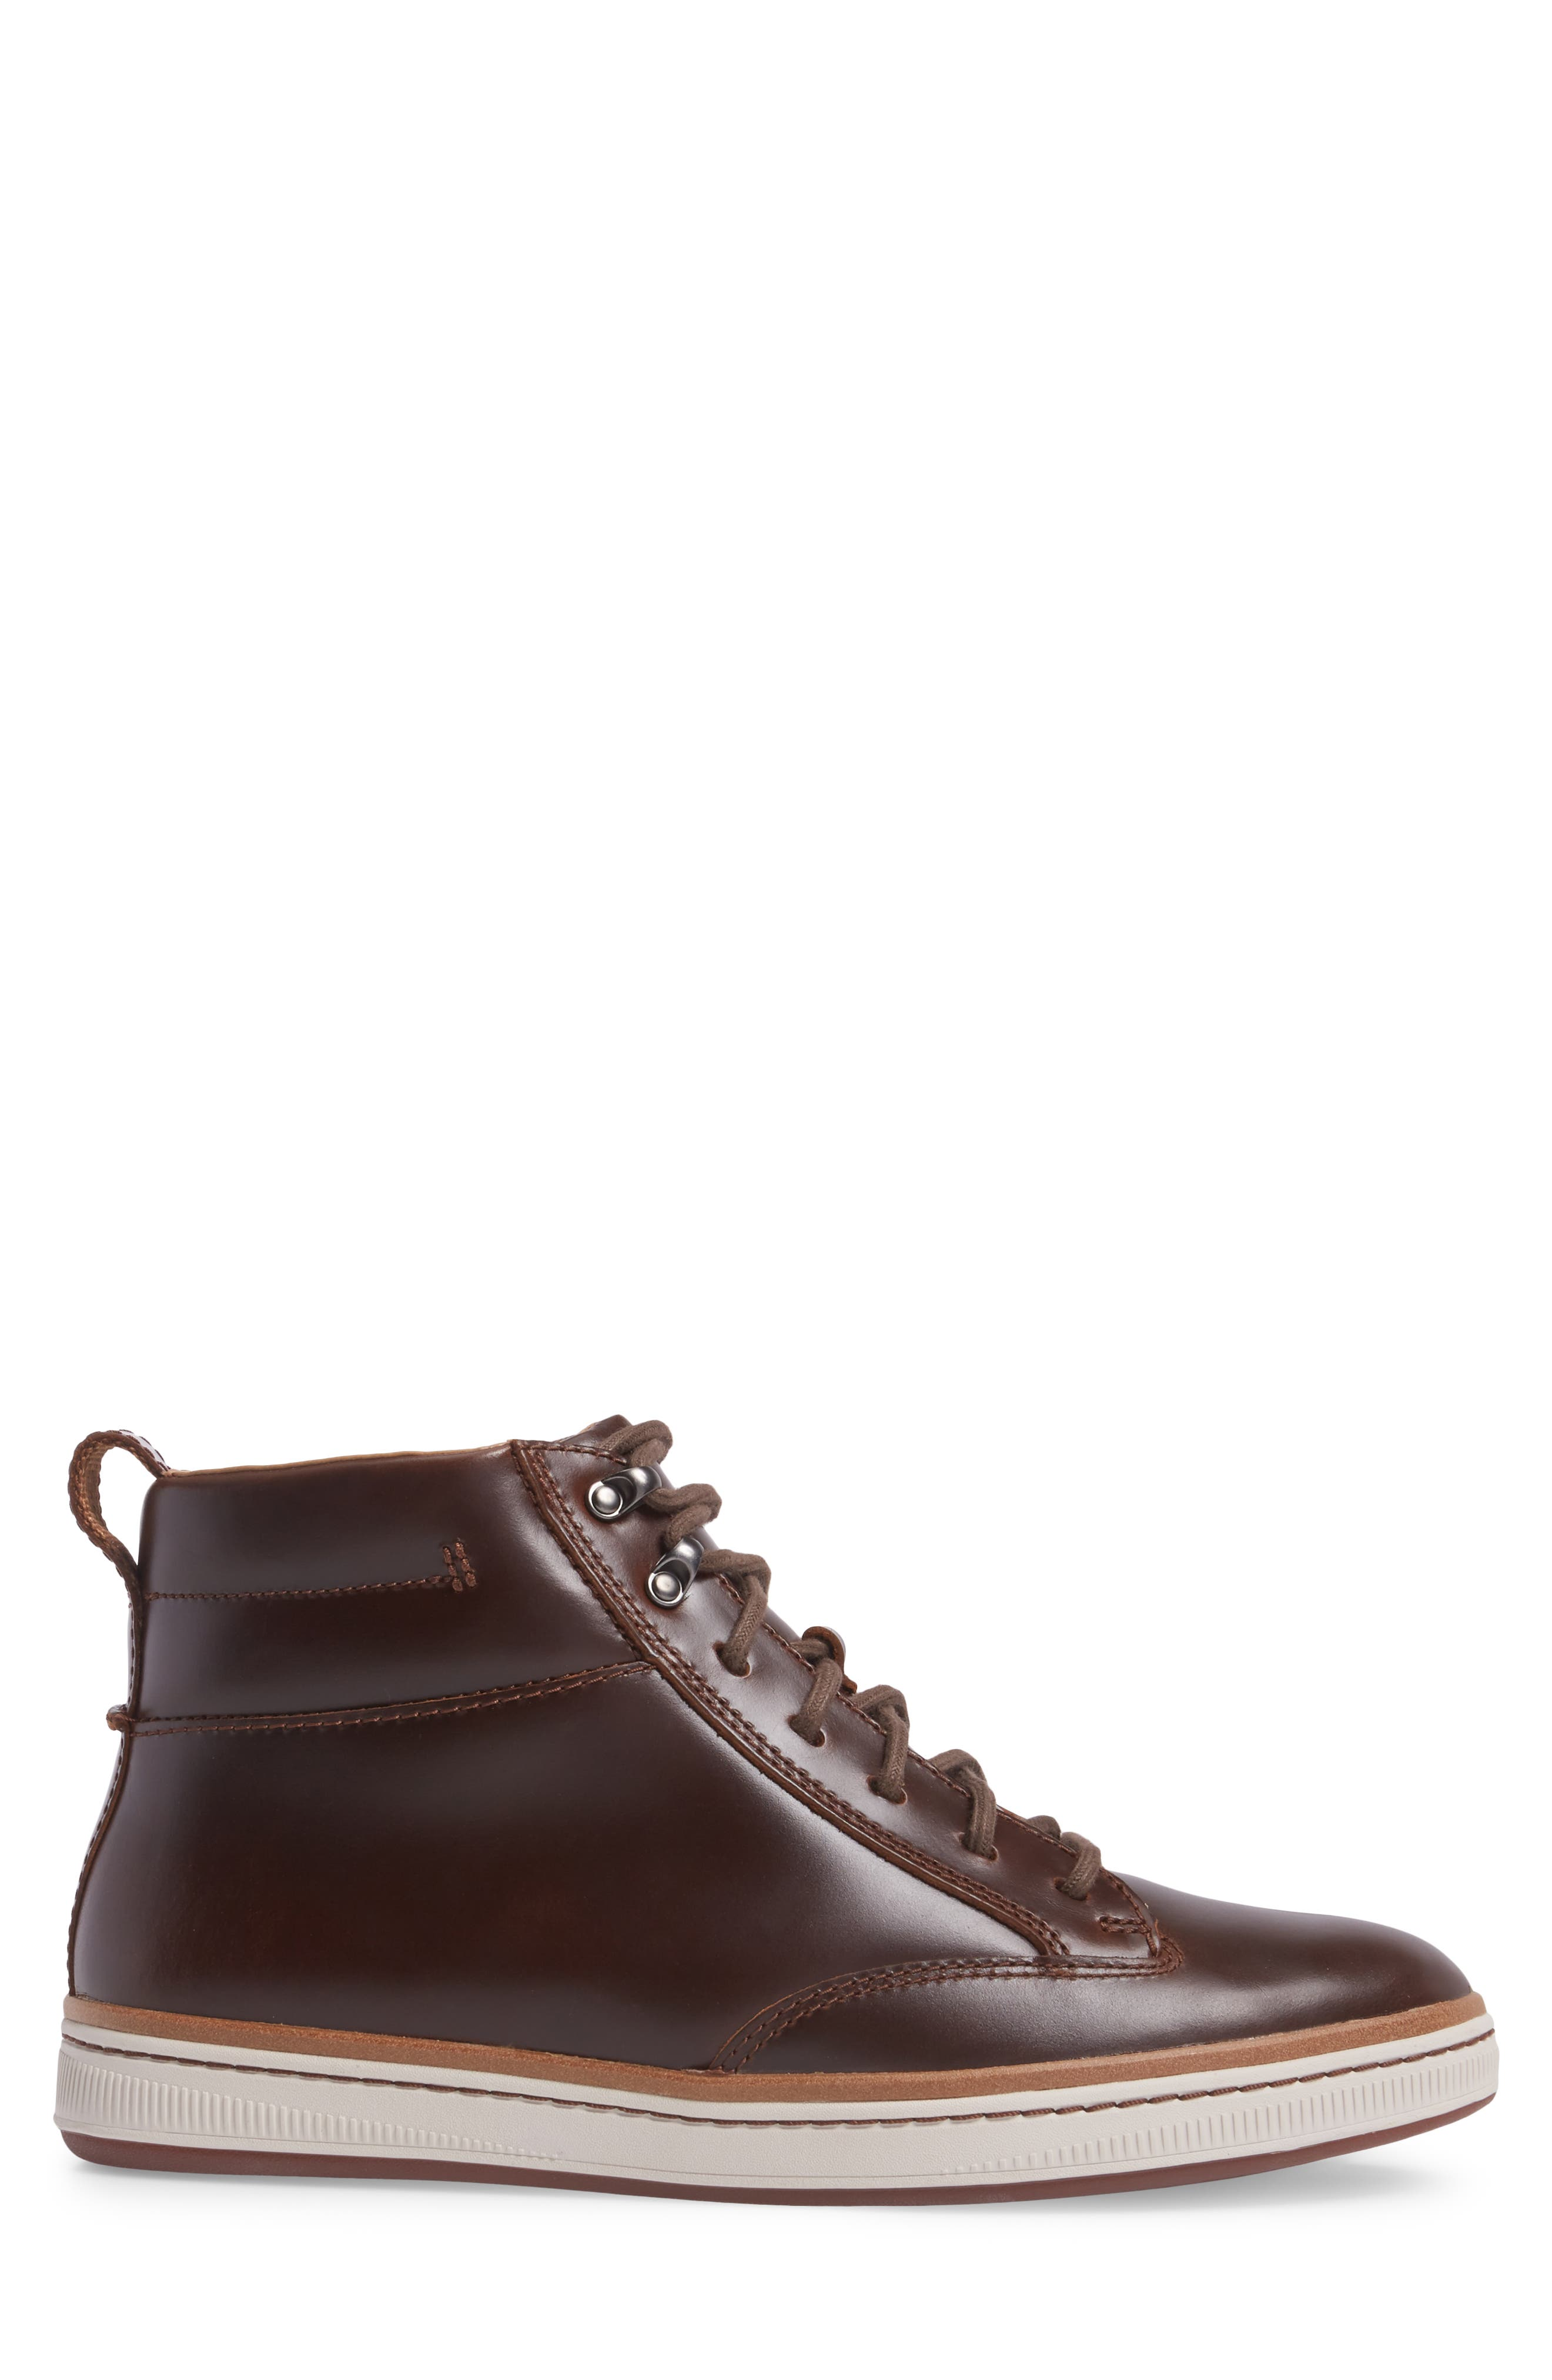 Alternate Image 3  - Clarks® Norsen Mid Water Resistant Plain Toe Boot with Faux-Fur Lining (Men)